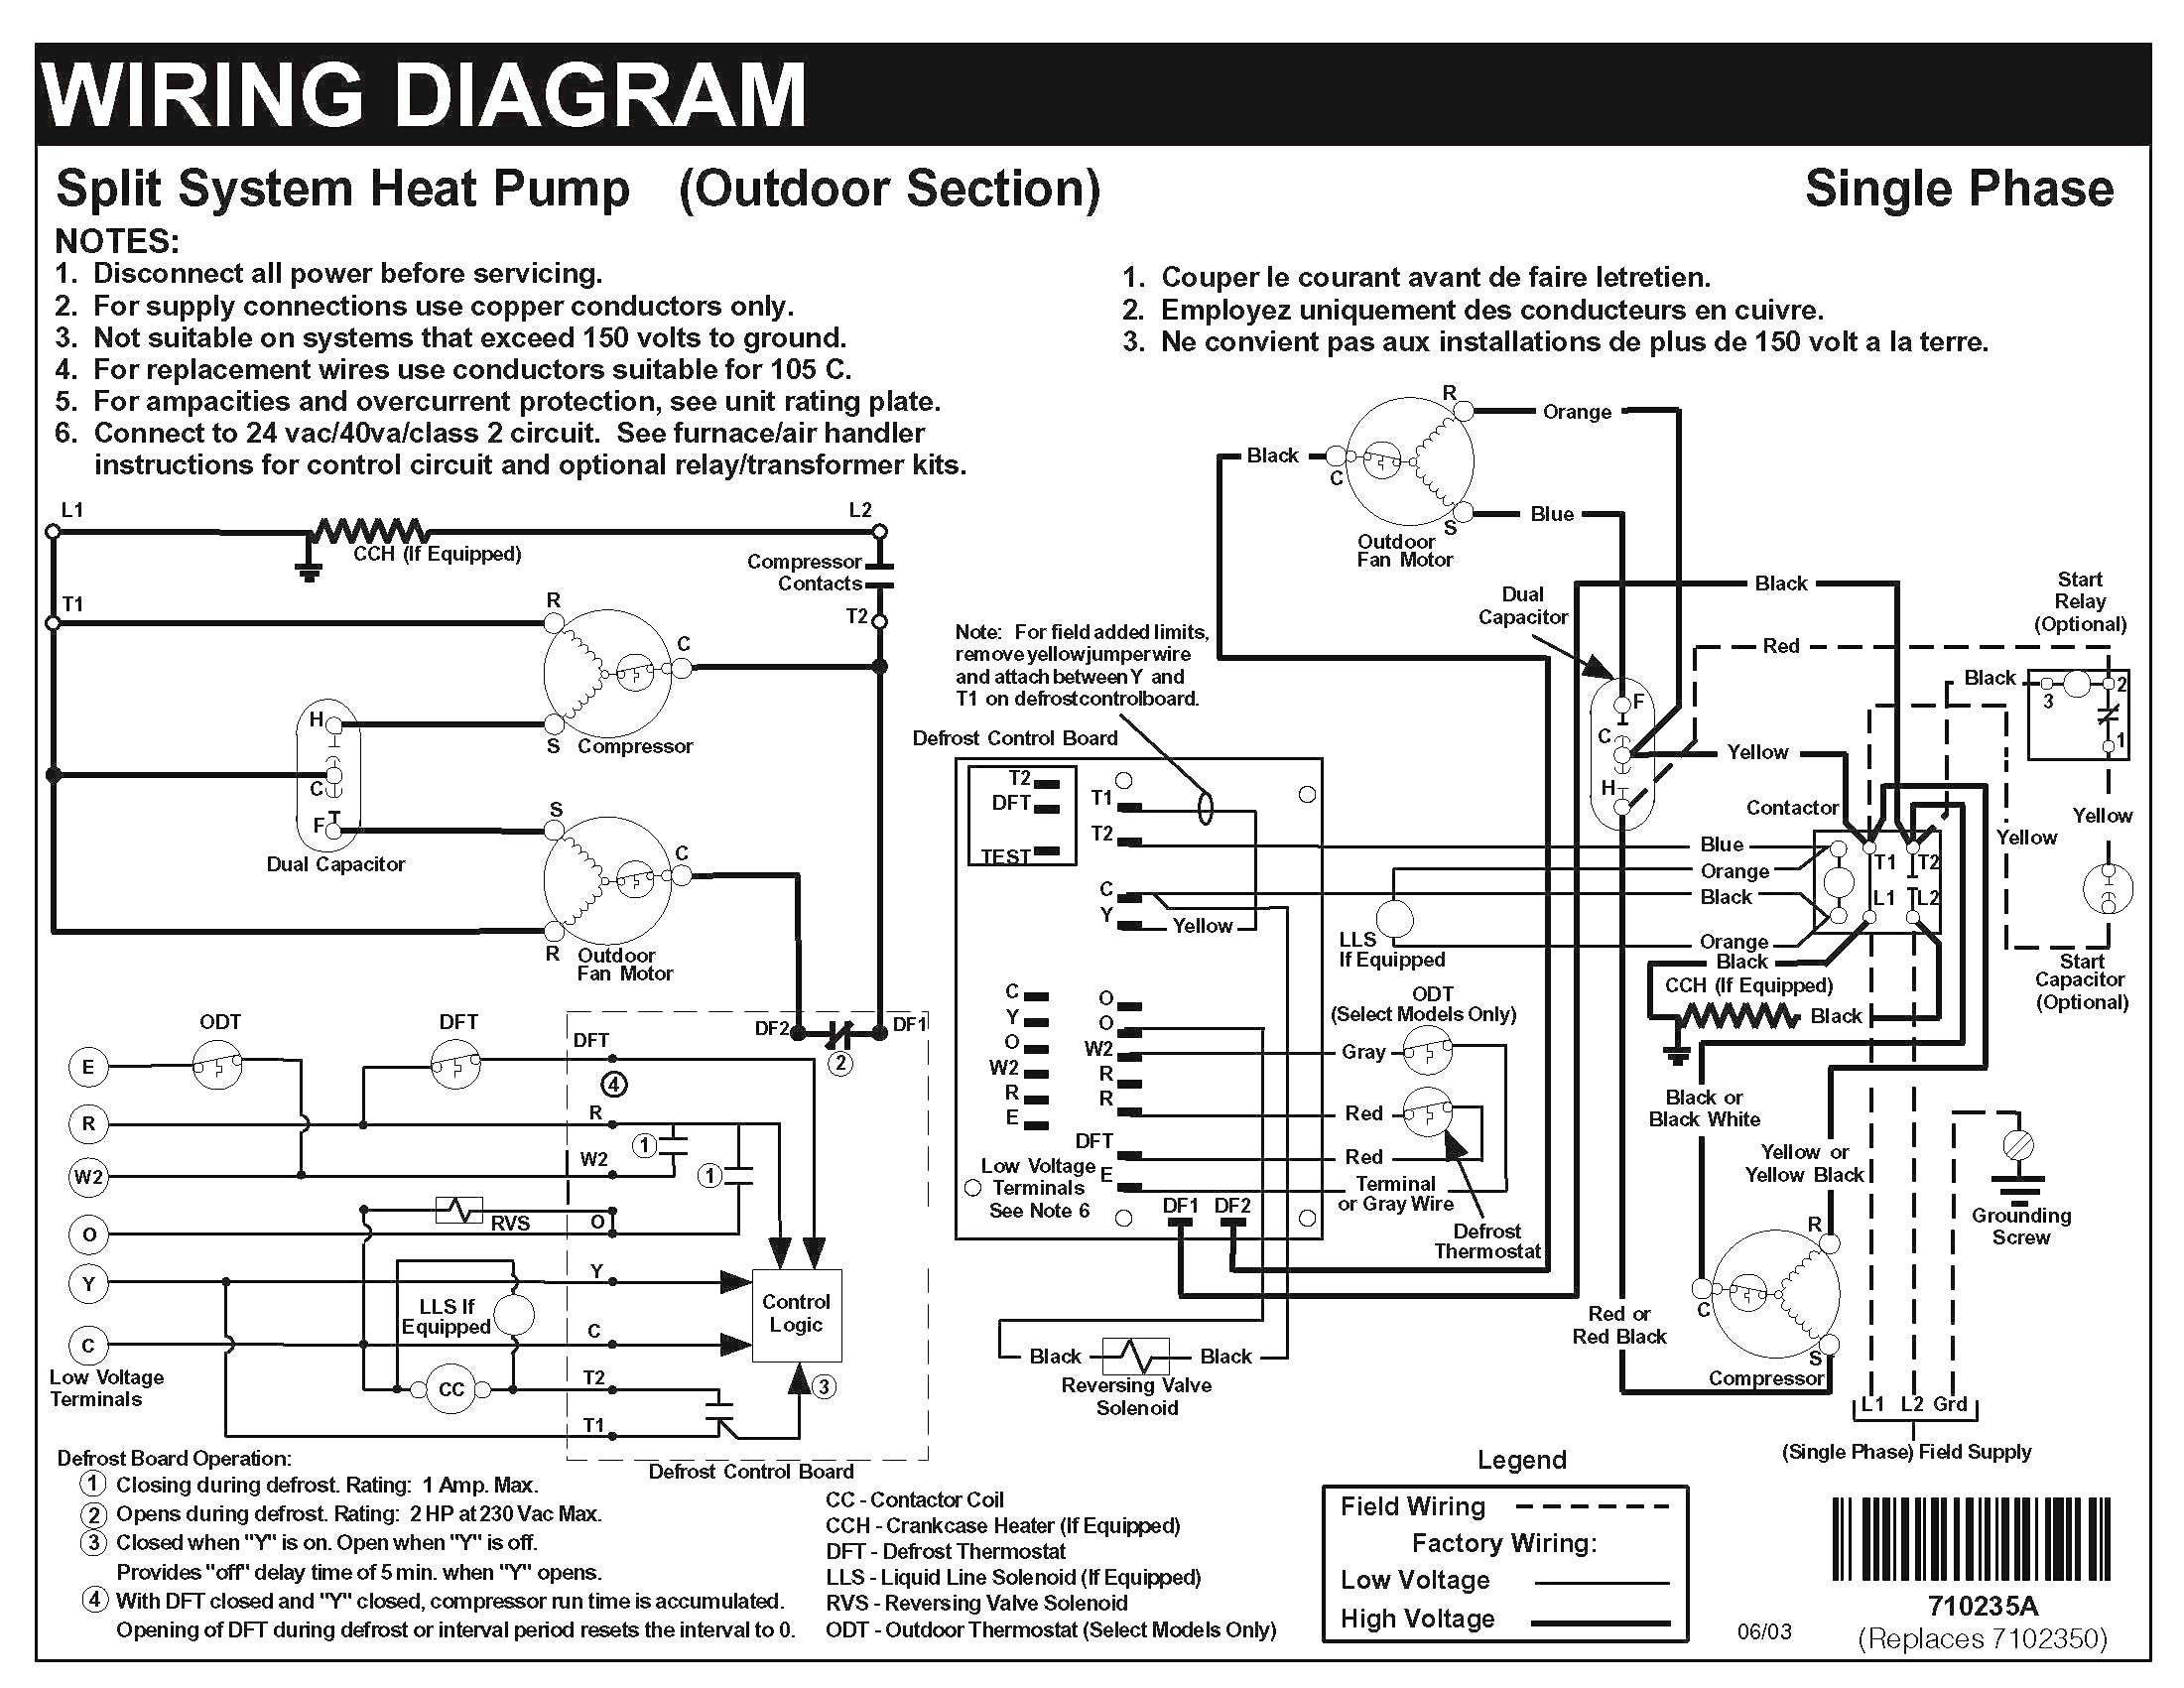 goodman package heat pump wiring diagram labelled of root hair cell lennox 51m33 gallery sample pics detail name thermostat luxury unit